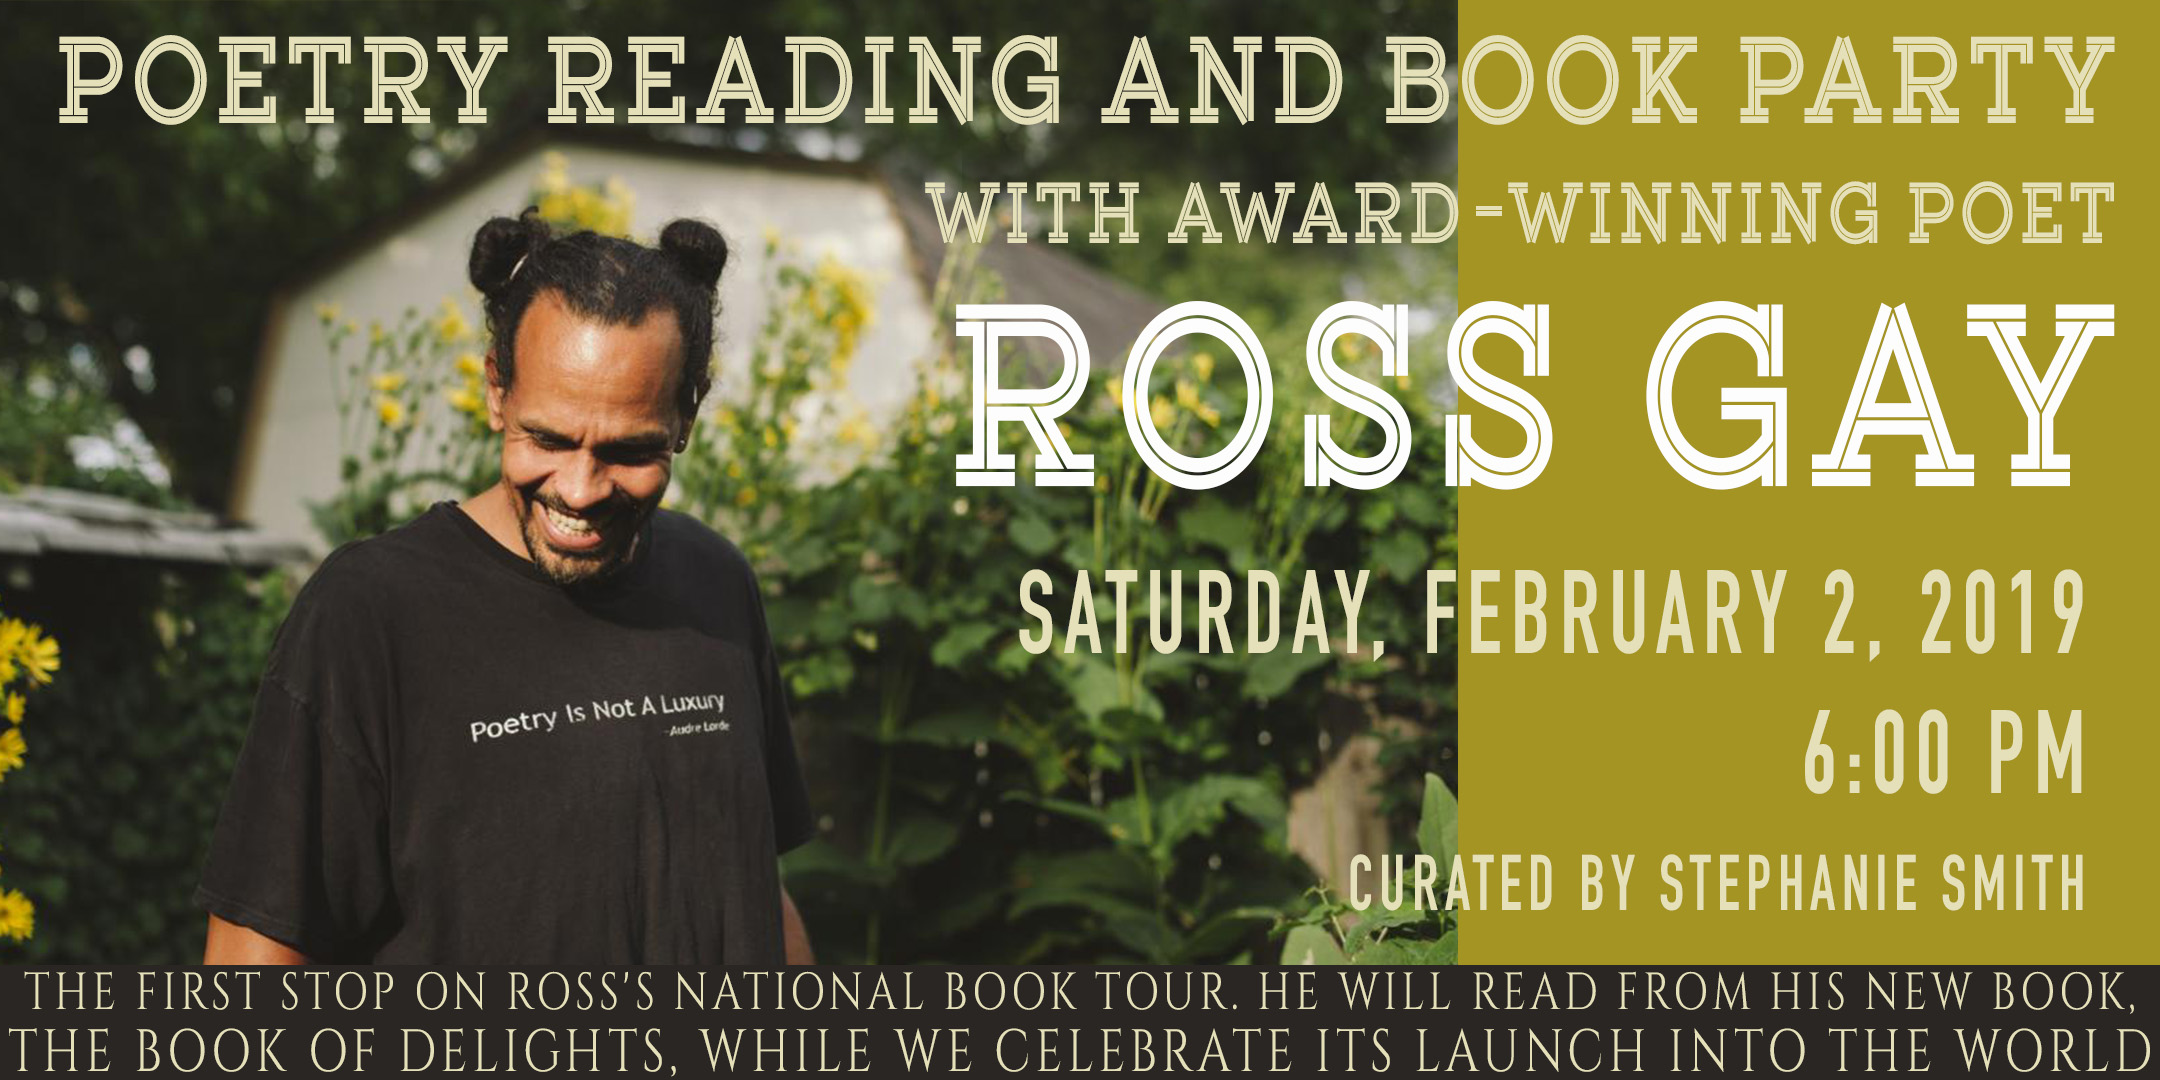 Poetry Reading and Book Party with Award-Winning Poet Ross Gay @ ArtYard's Theater | Frenchtown | New Jersey | United States